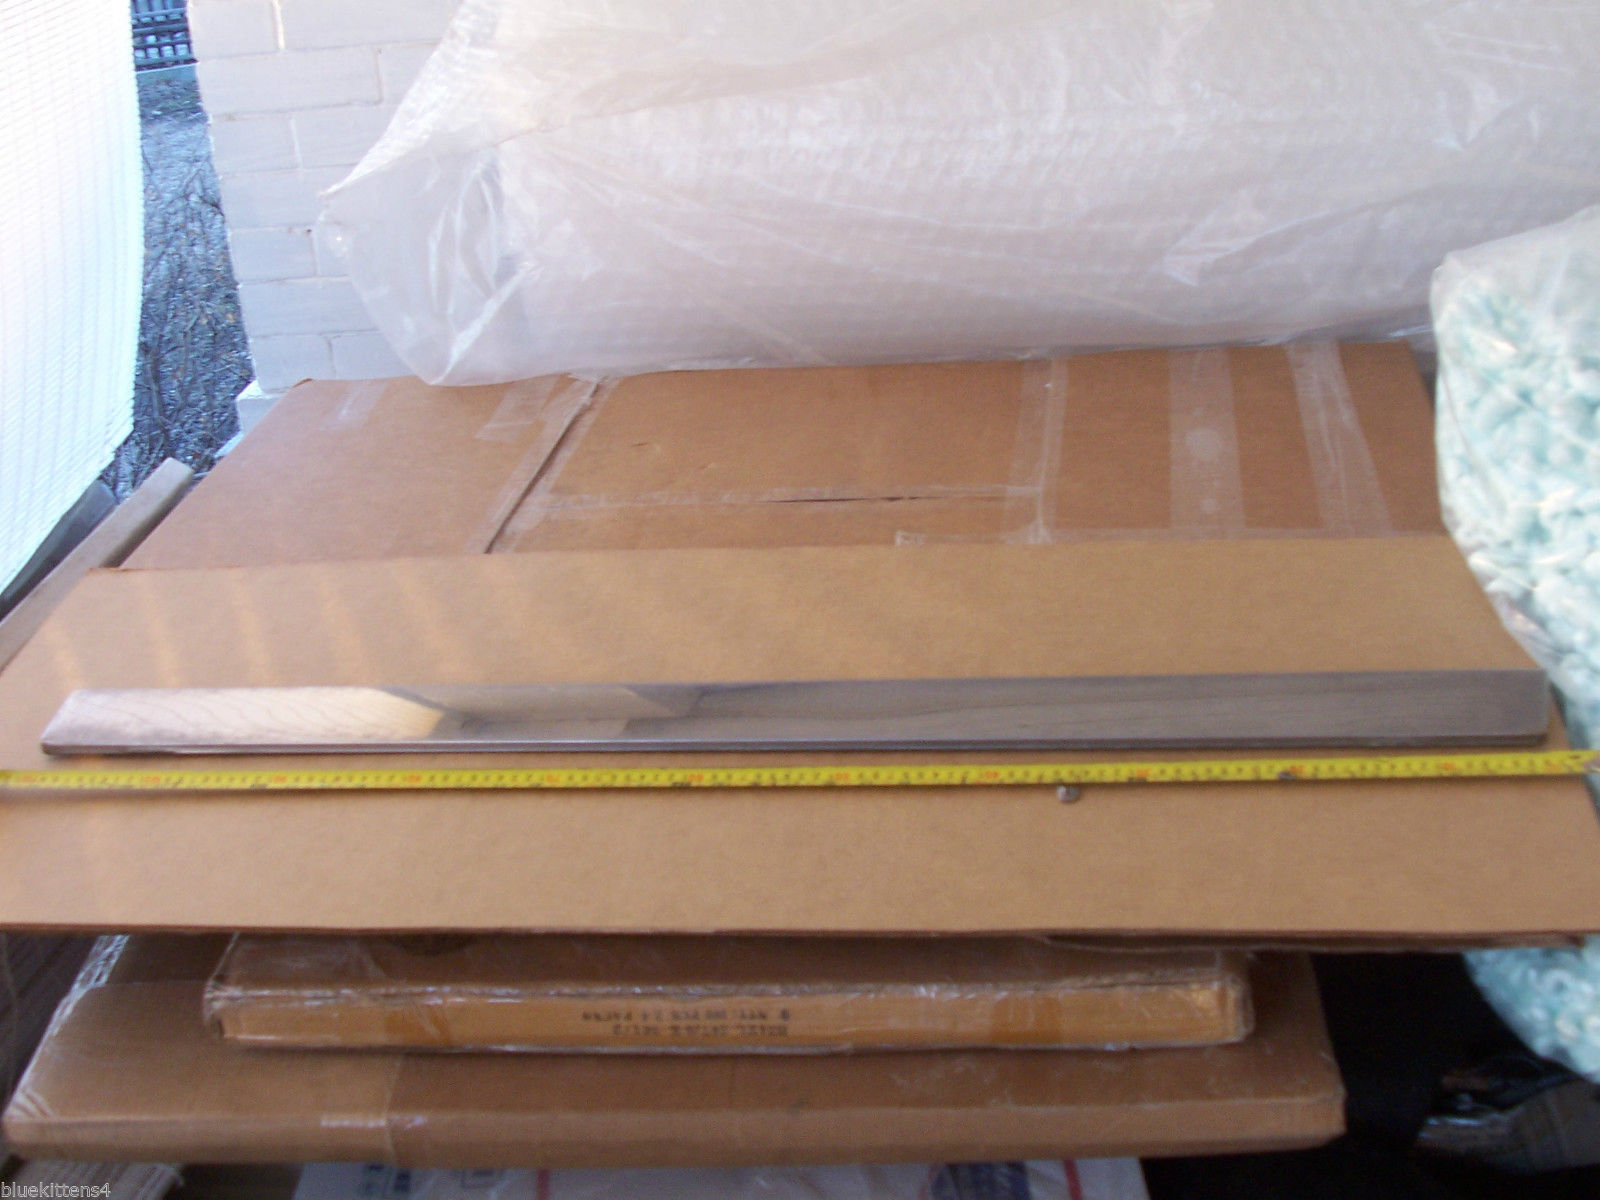 1991 1992 BROUGHAM RIGHT FRONT DOOR LOWER TRIM MOLDING OEM USED CADILLAC